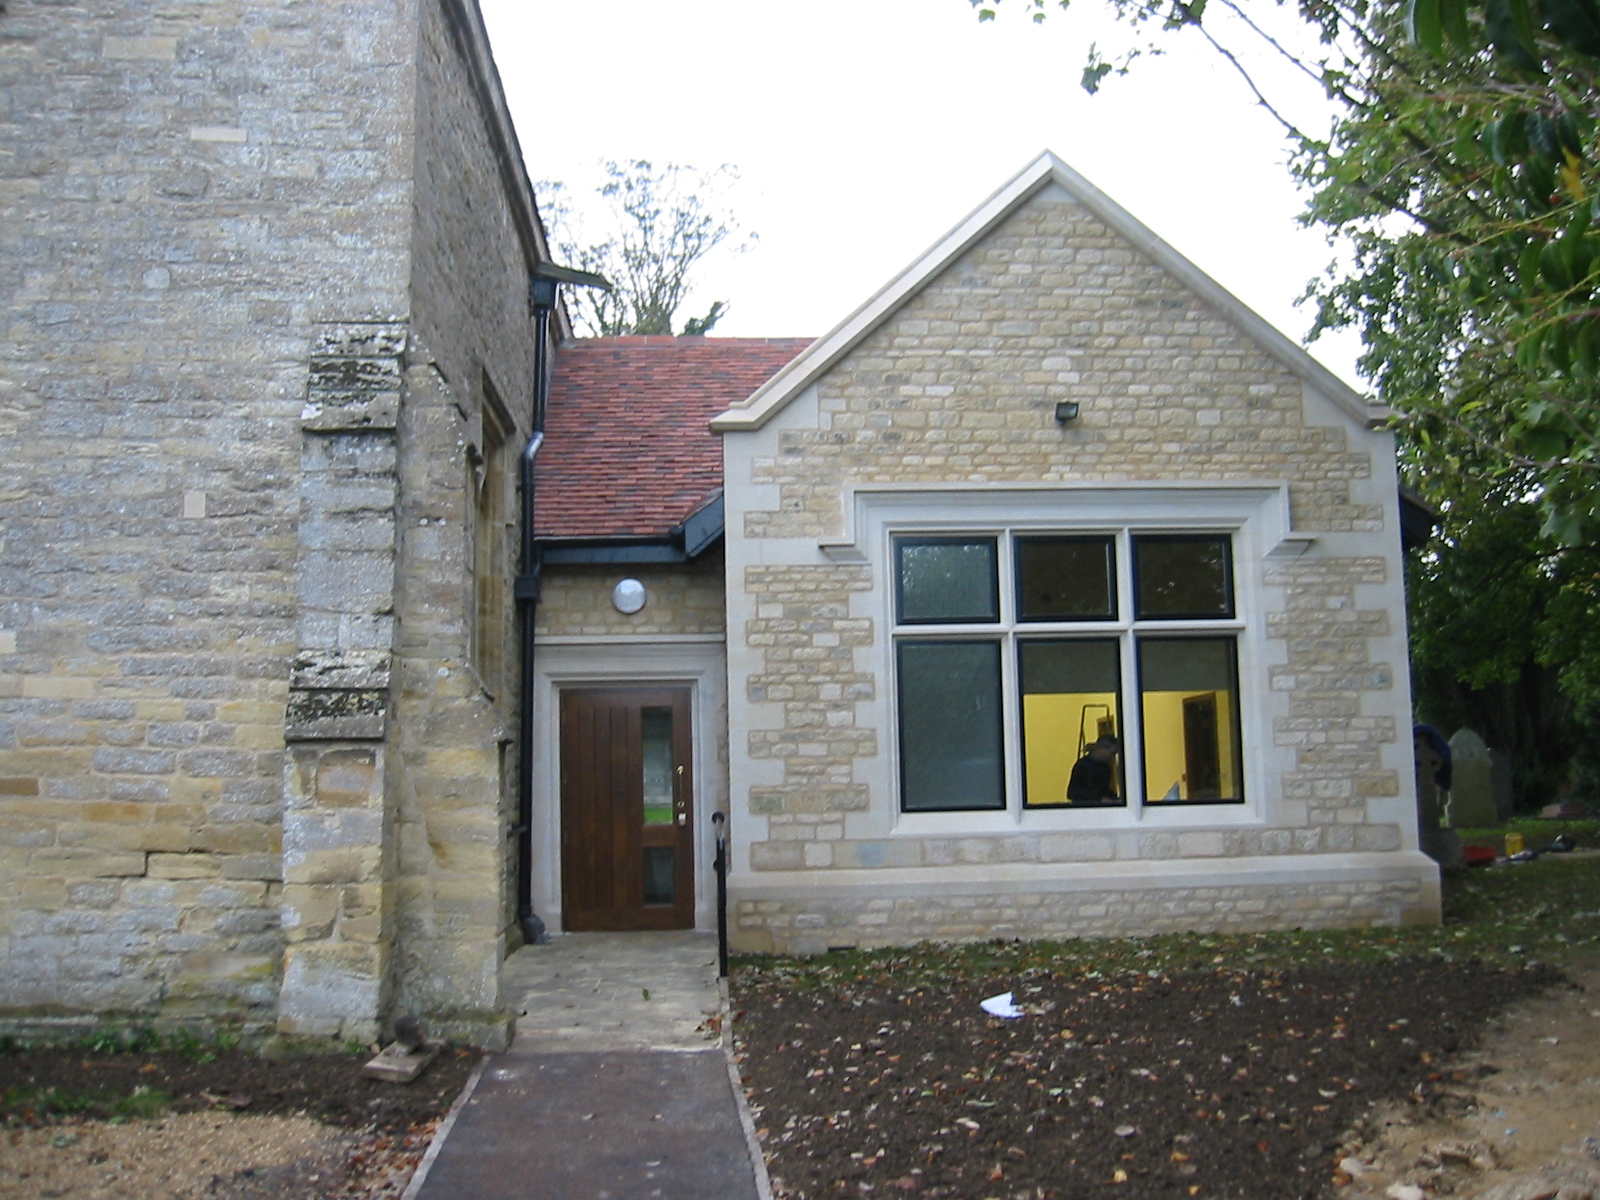 Meeting Room for St. Peter's, Sharnbrook